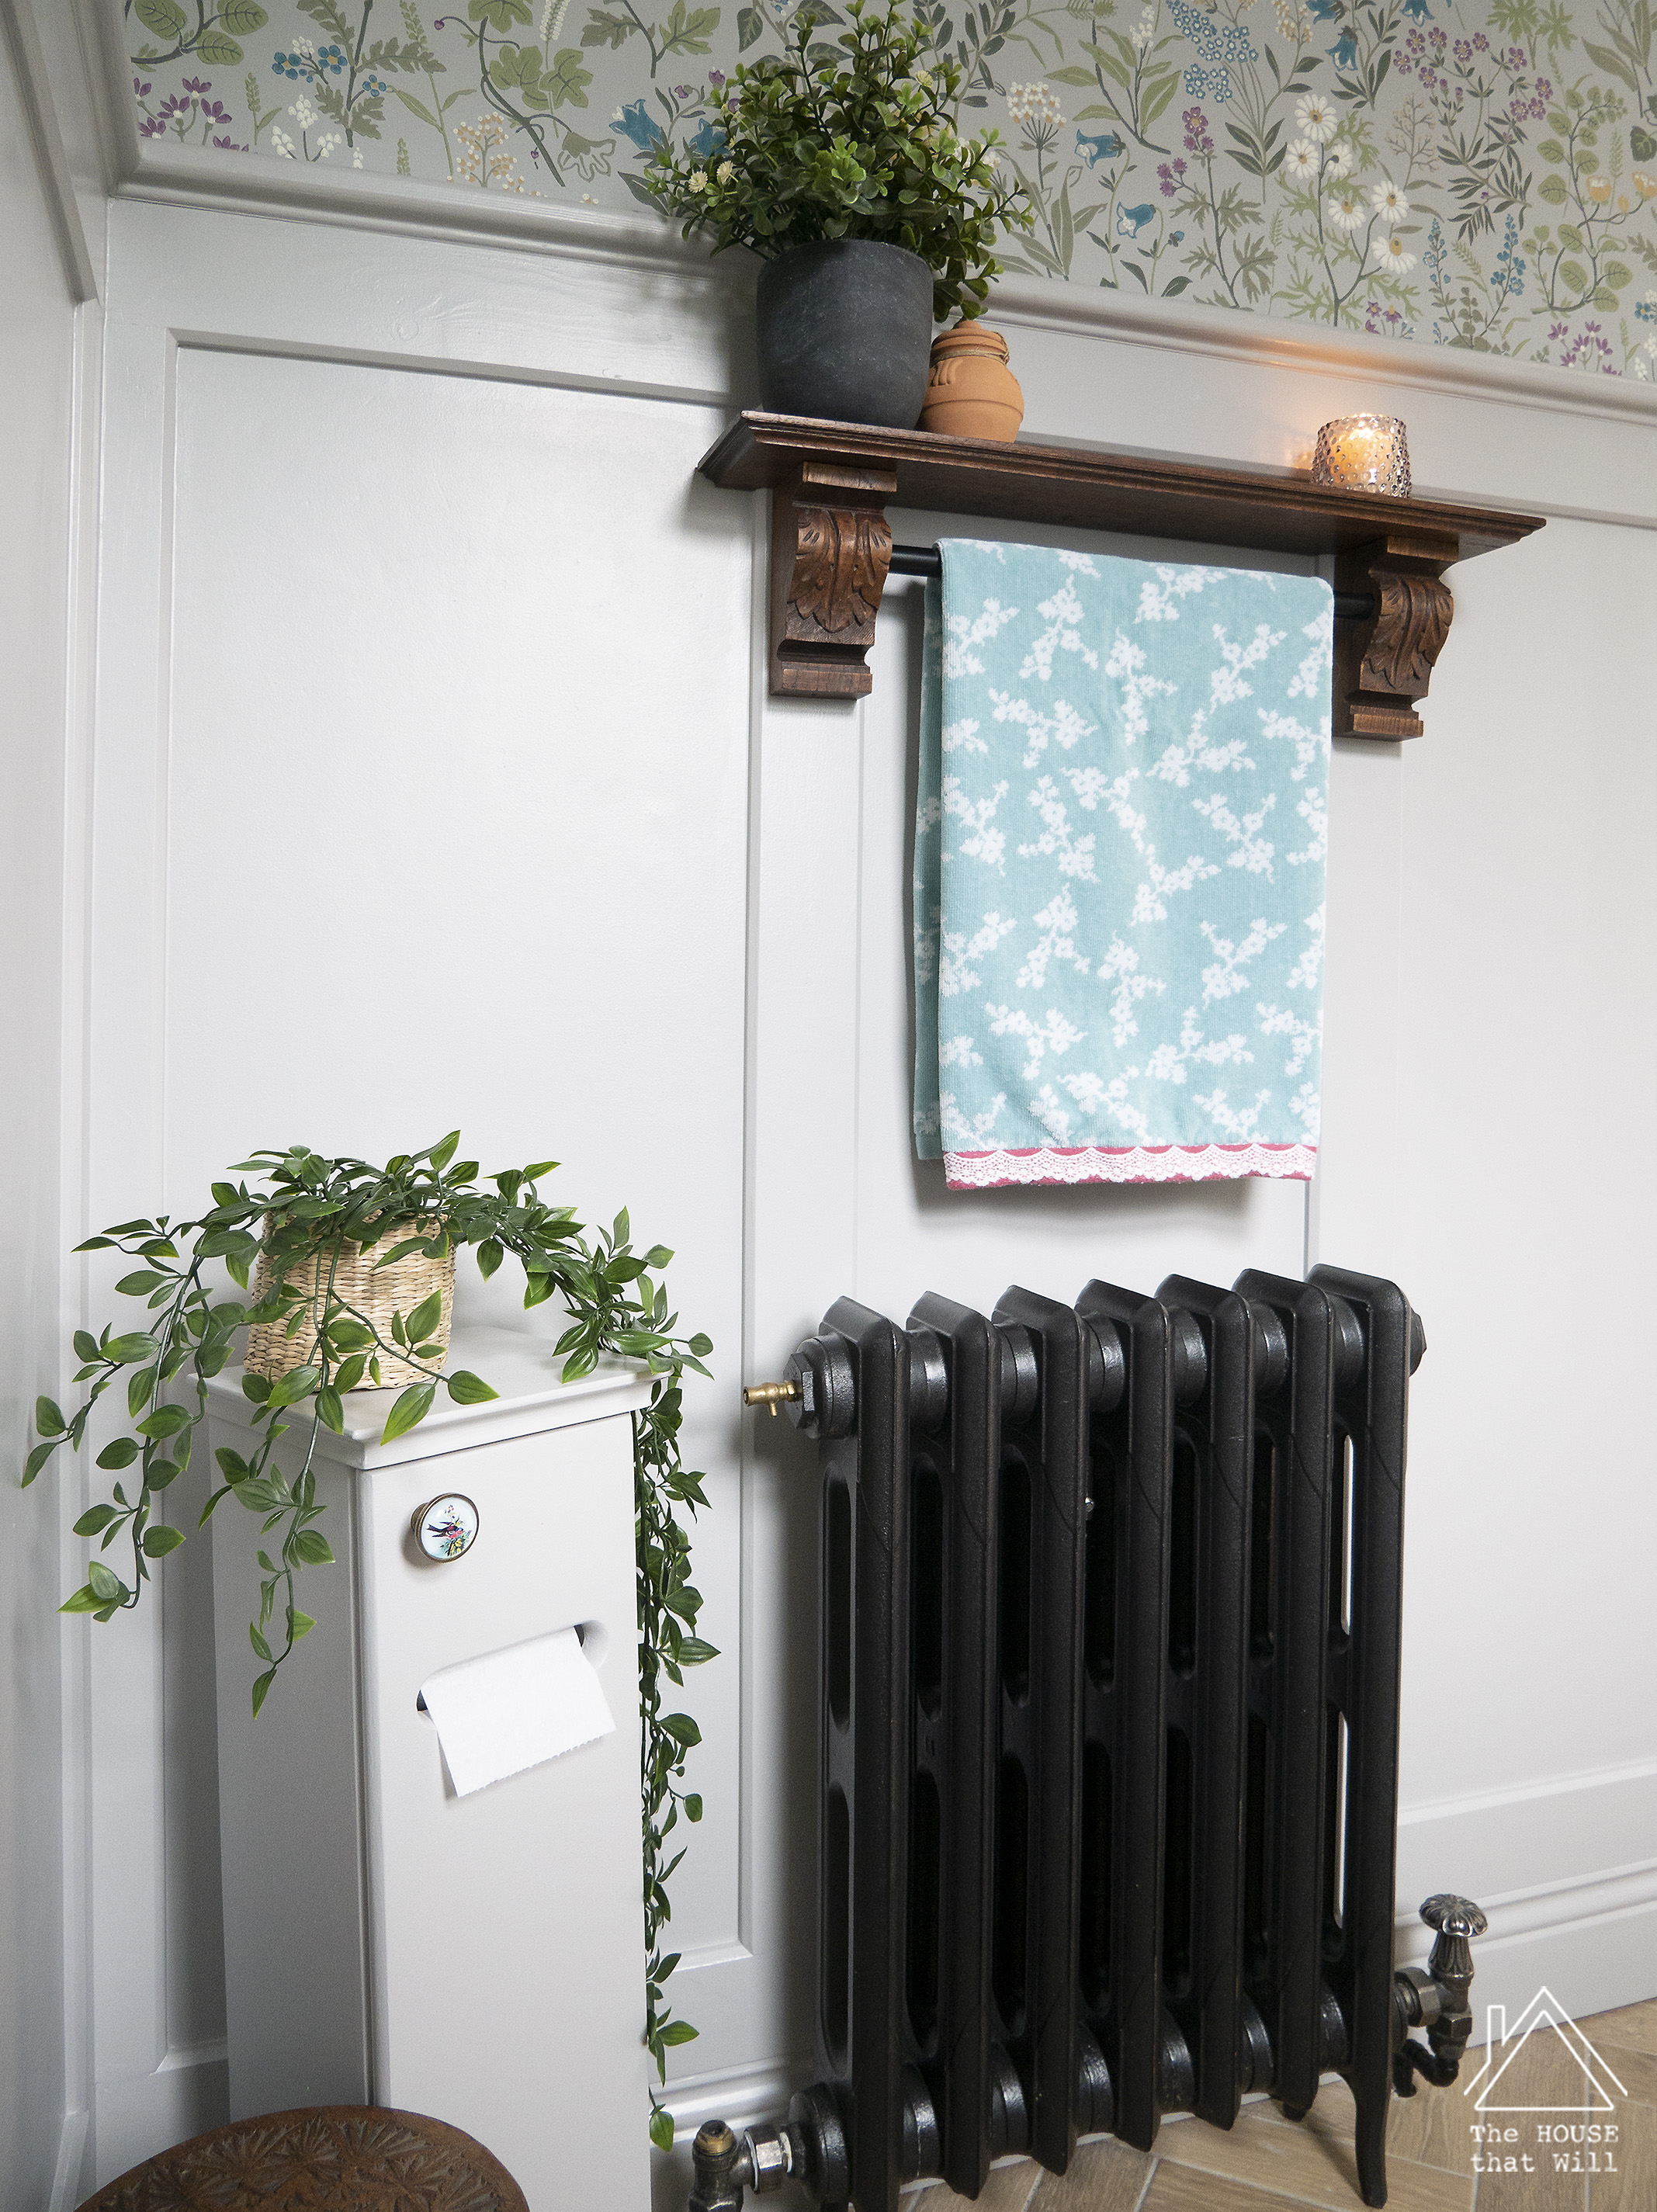 The House that Will | DIY Antique-style Towel Rail